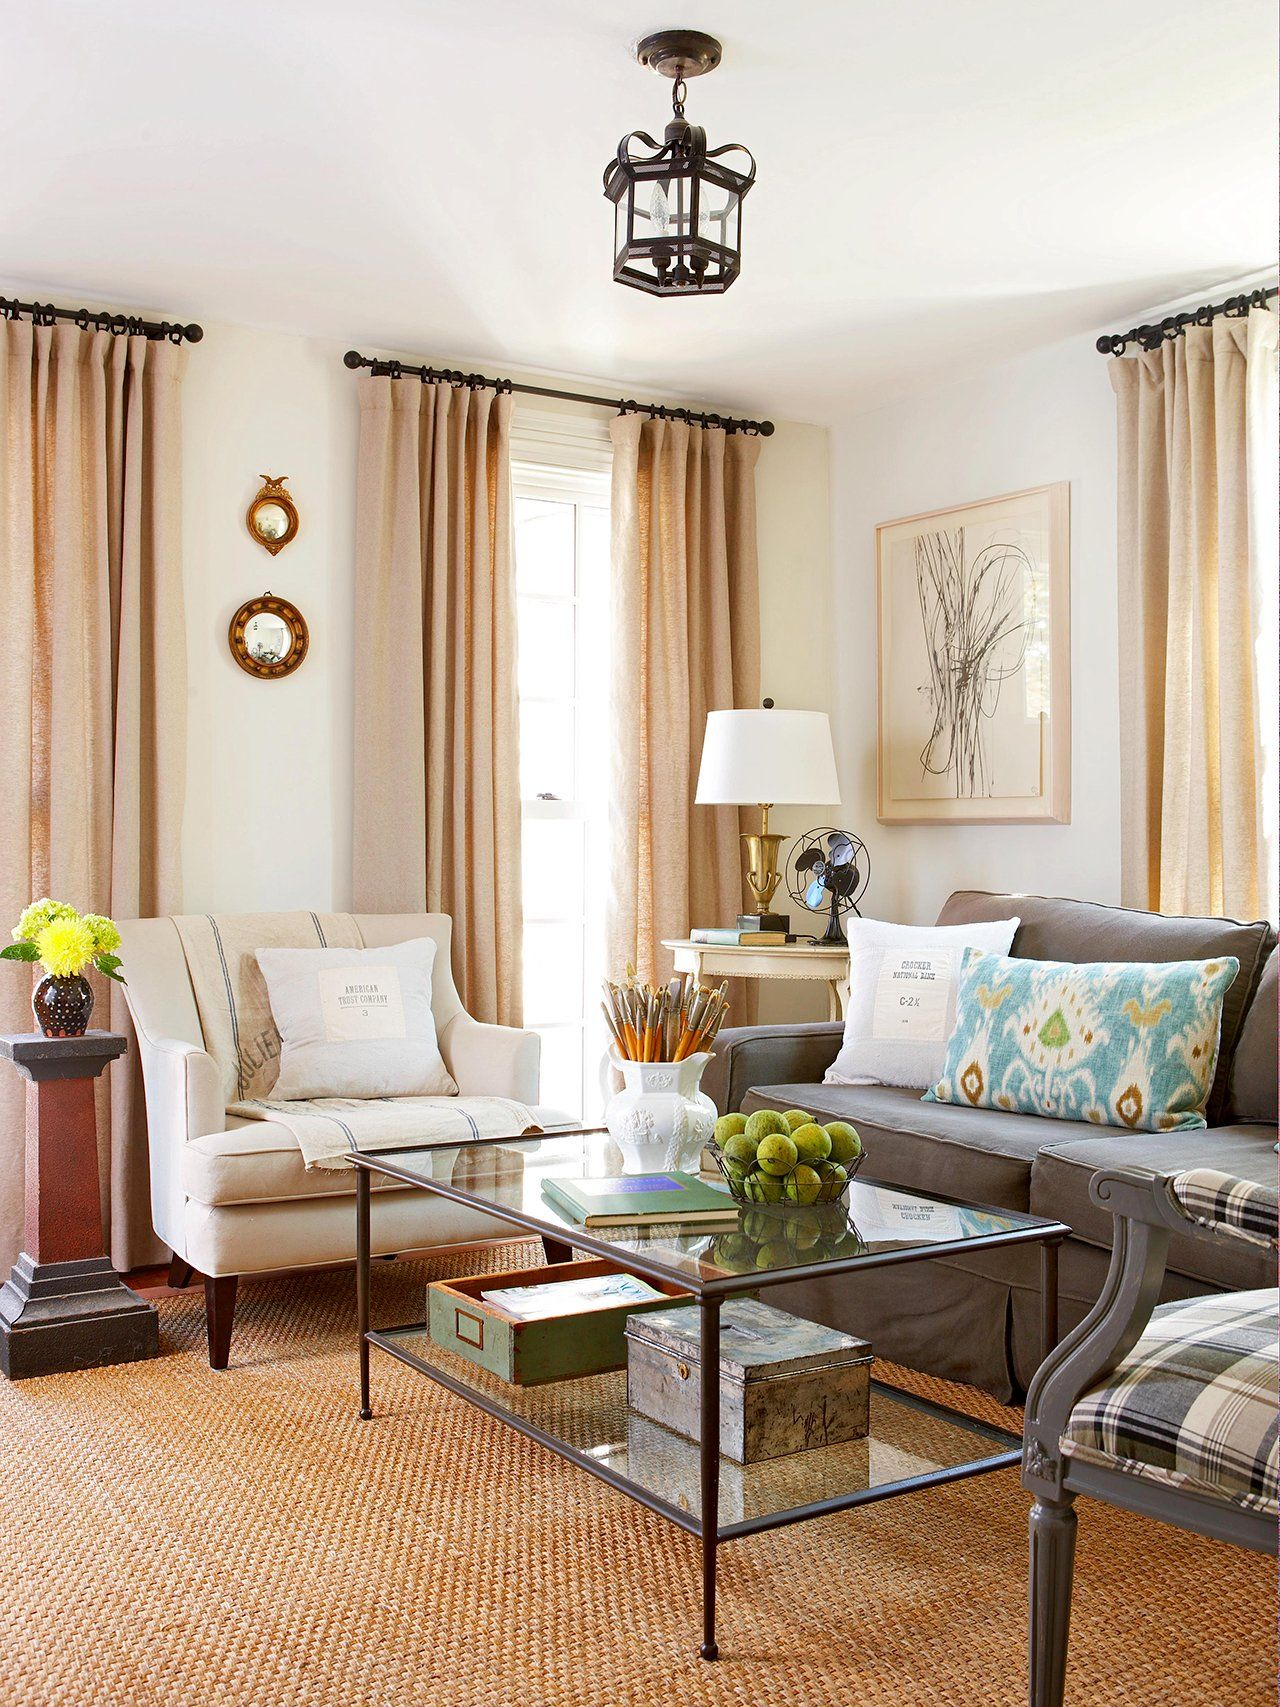 NoFail Tricks for Arranging Furniture in 2020 Living